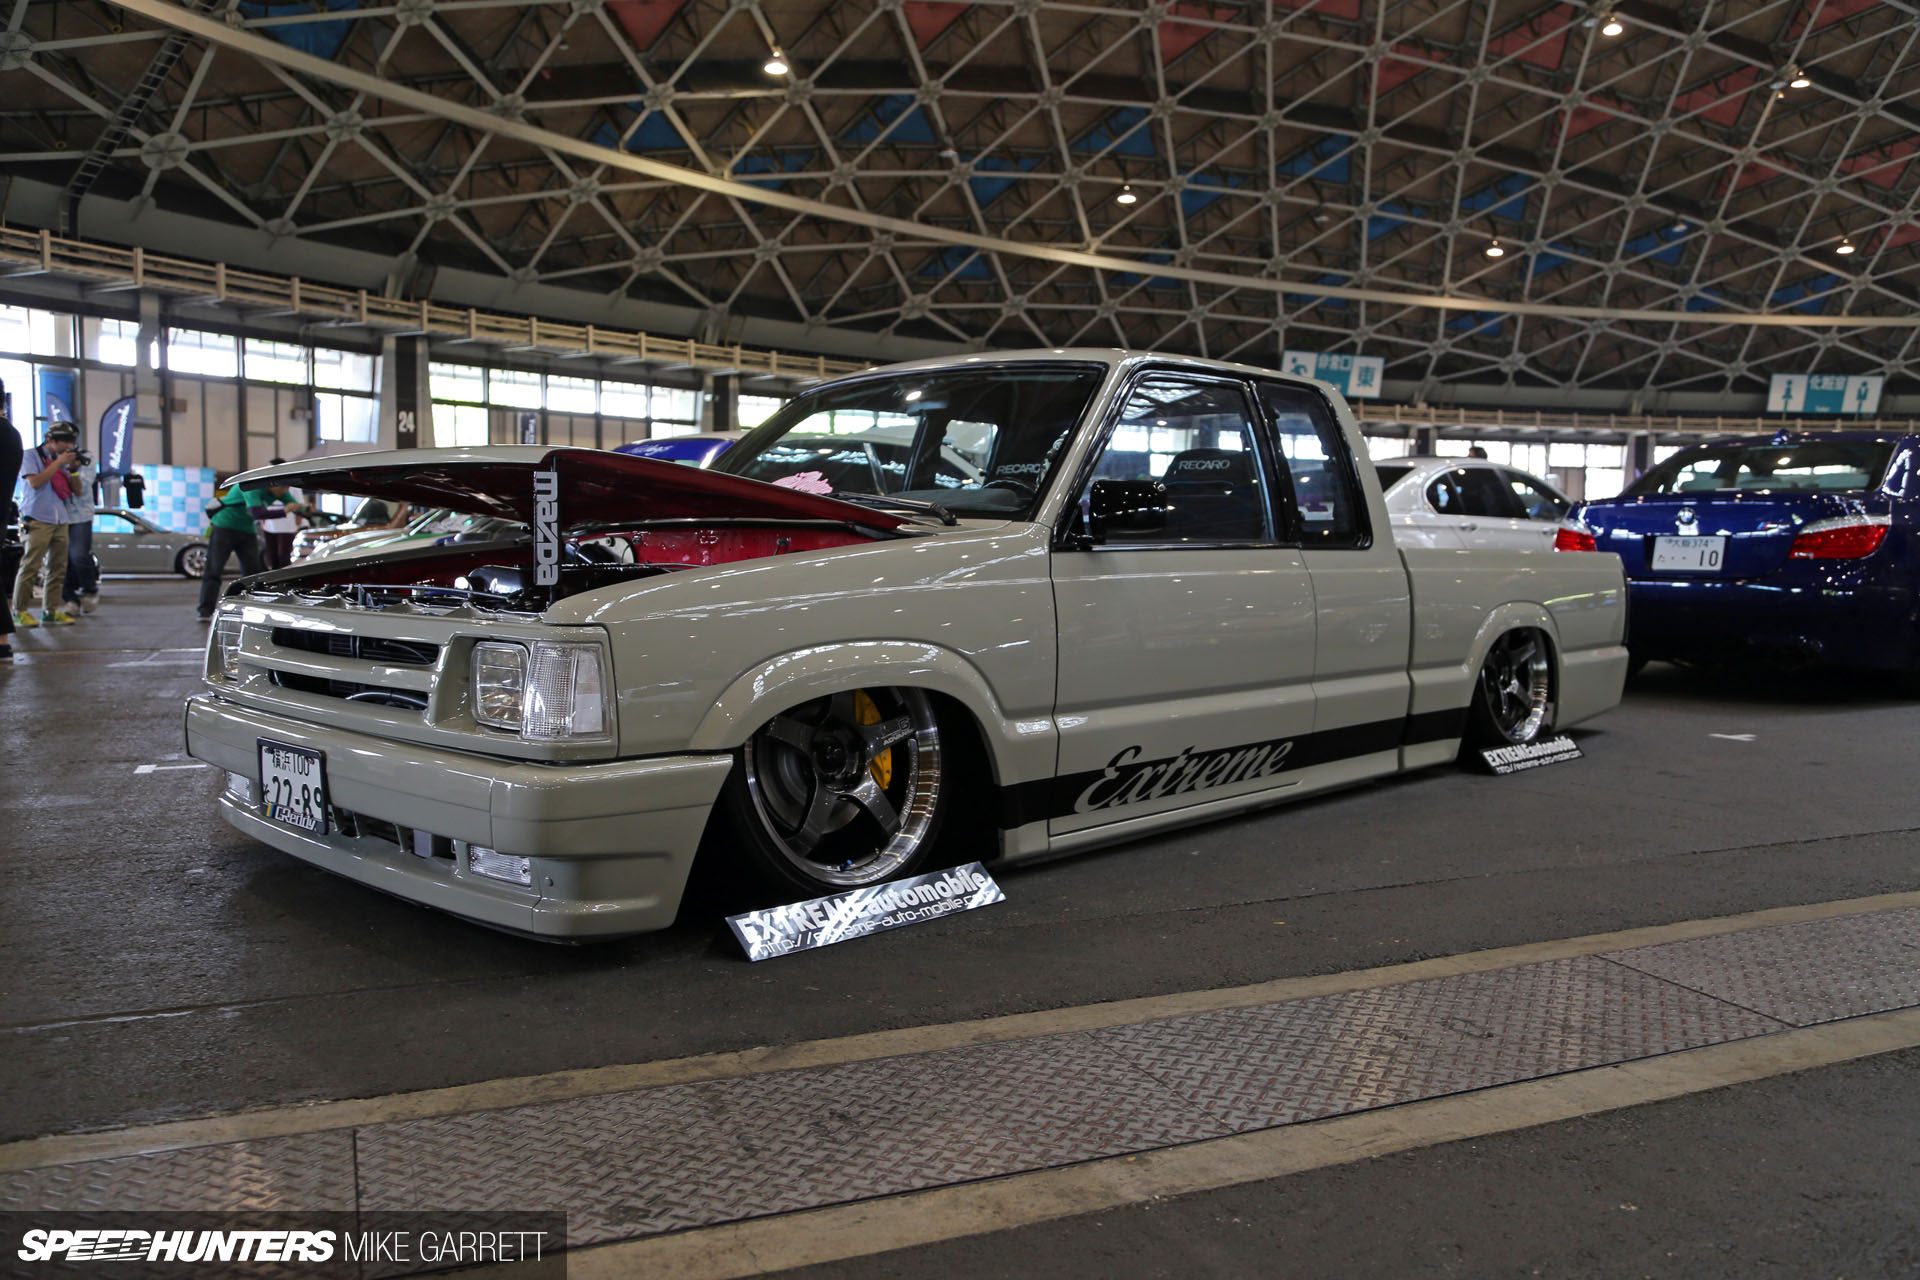 SR-Powered Mazda Pickup: When Drift Car Meets Minitruck - Speedhunters